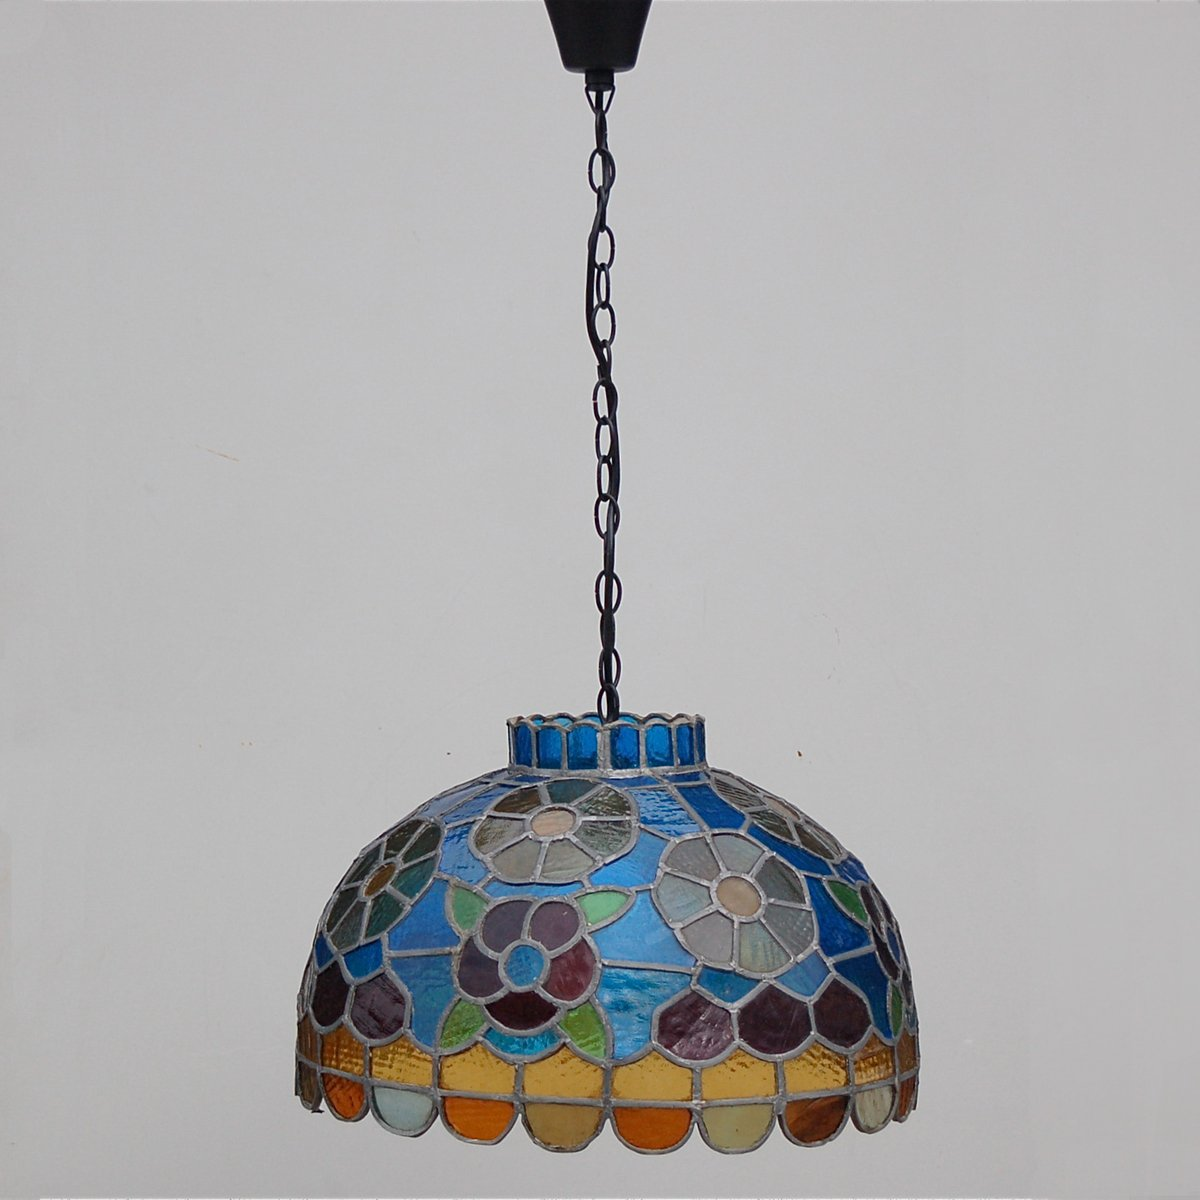 lighting dancing stained up the glass looking pixie large down light georgina on close ceiloing pendant online